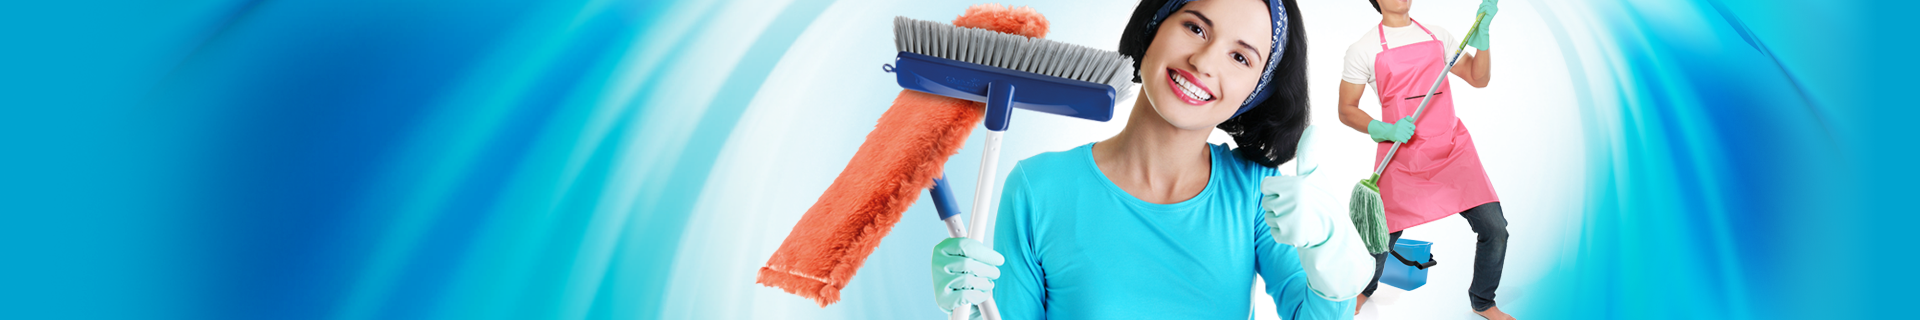 Woman holding Oates broom and mop